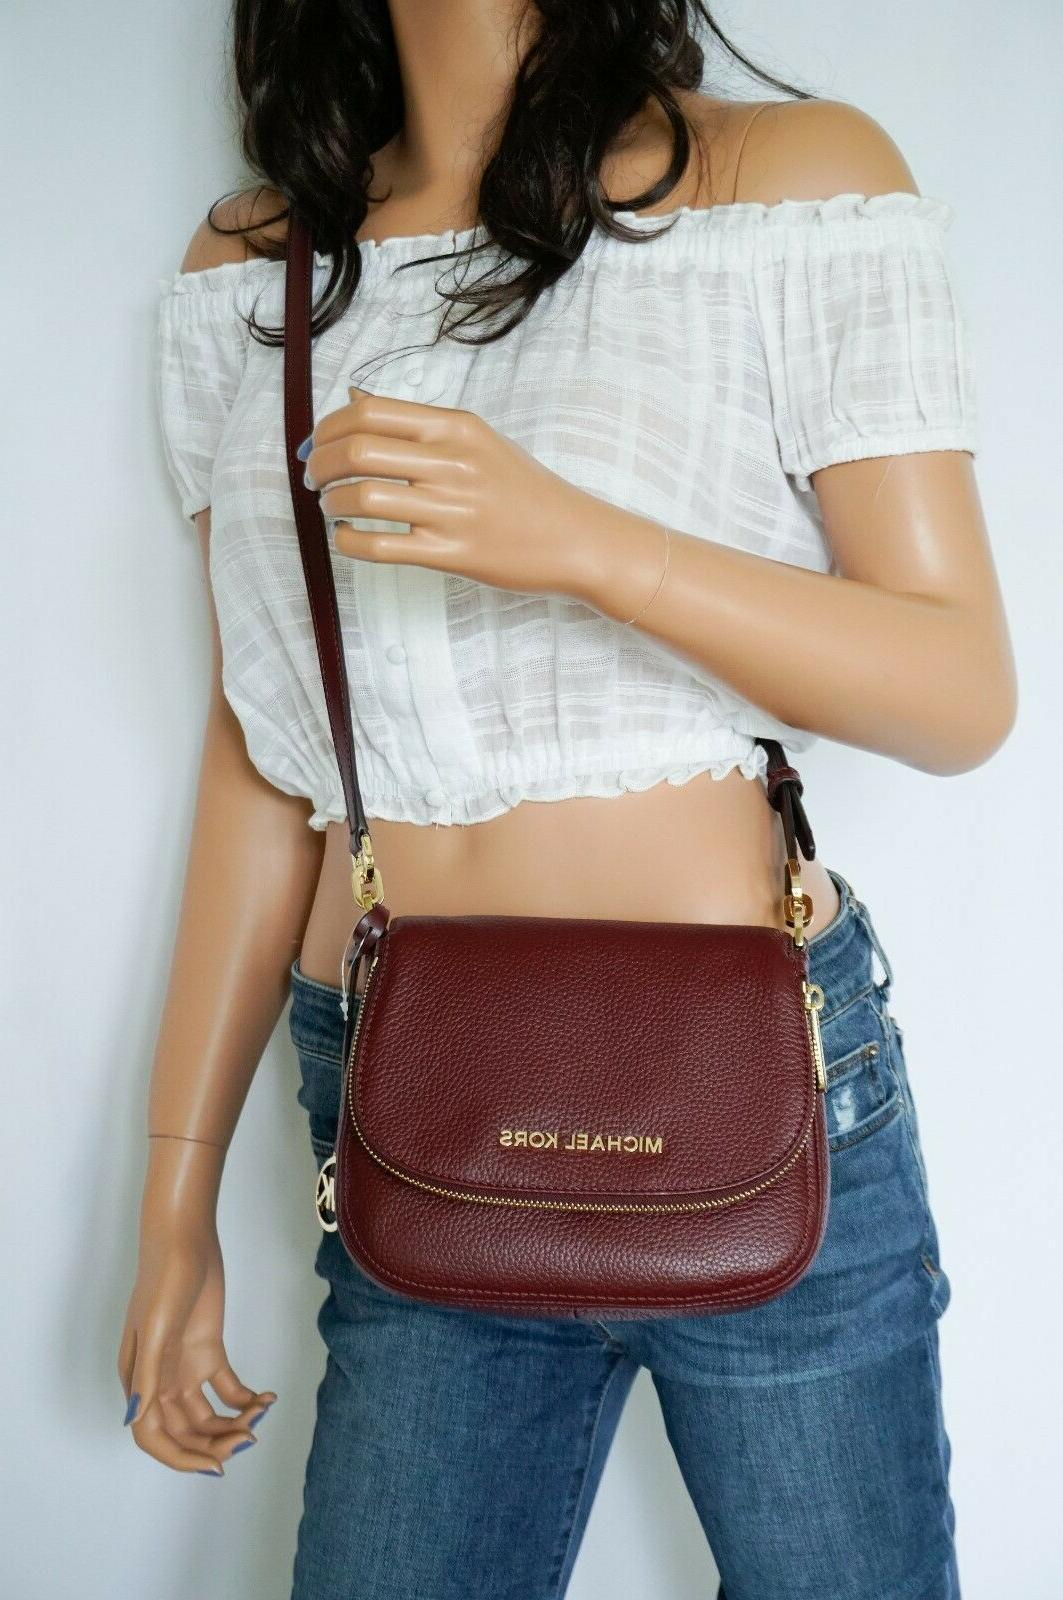 nwt bedford small flap crossbody pebbled leather